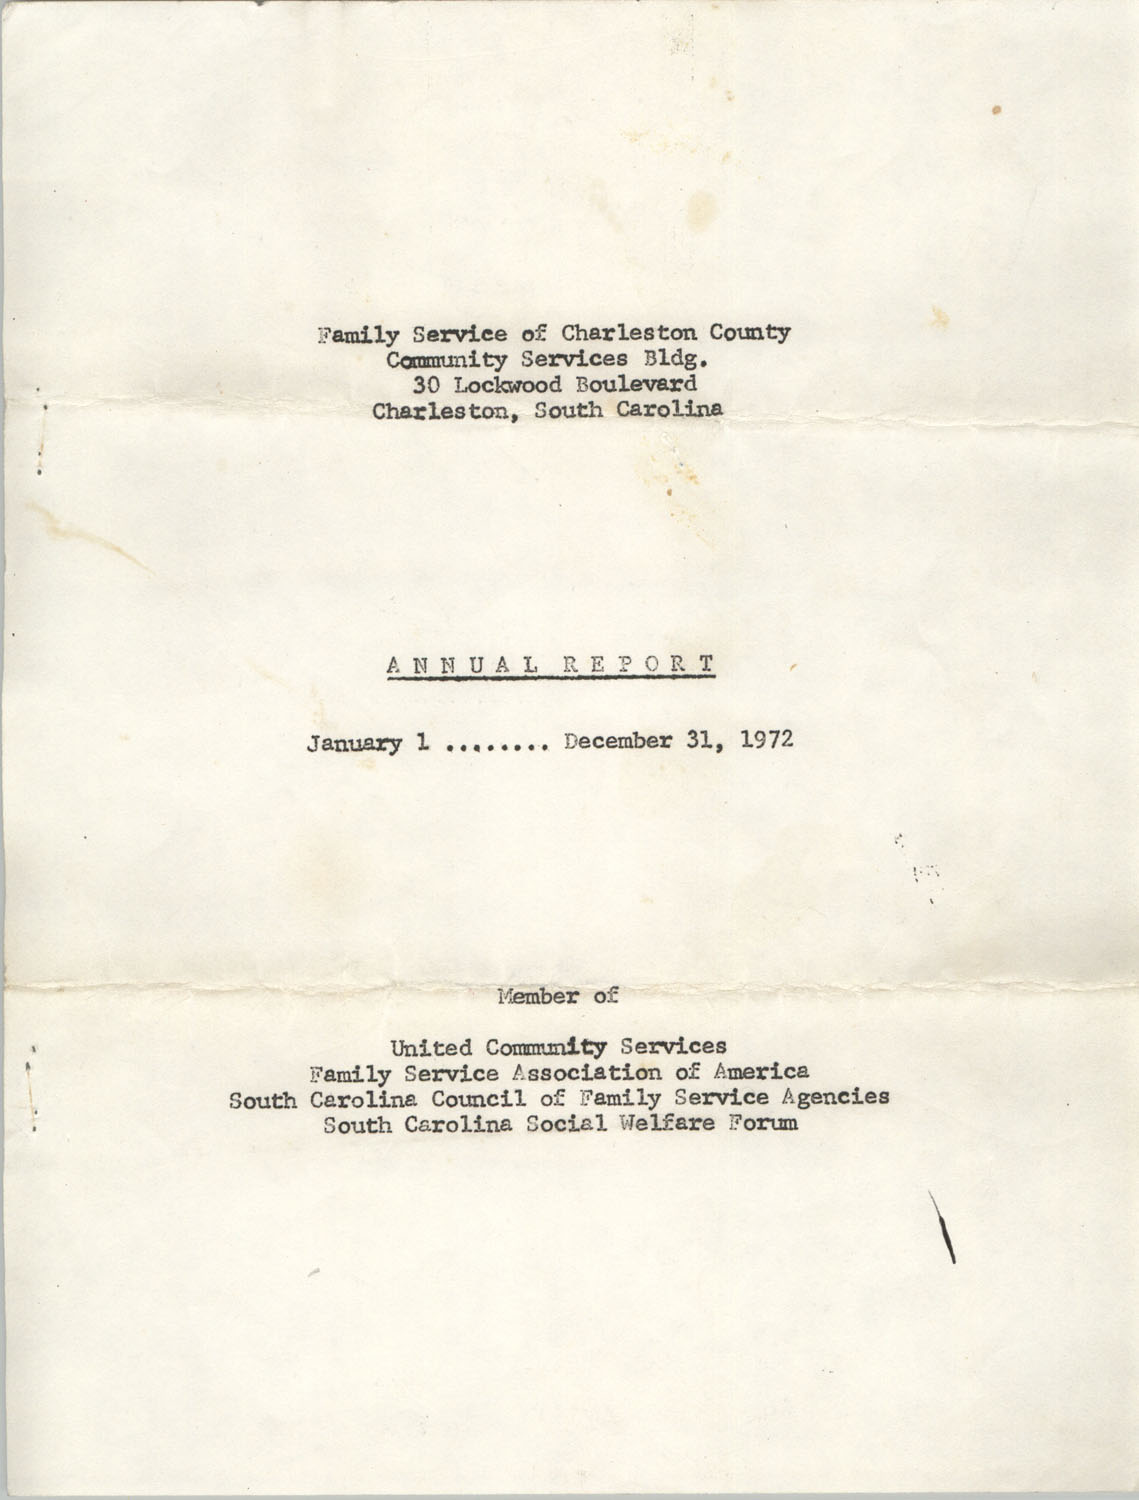 Annual Report, Family Service of Charleston County, January 1 to December 31, 1972